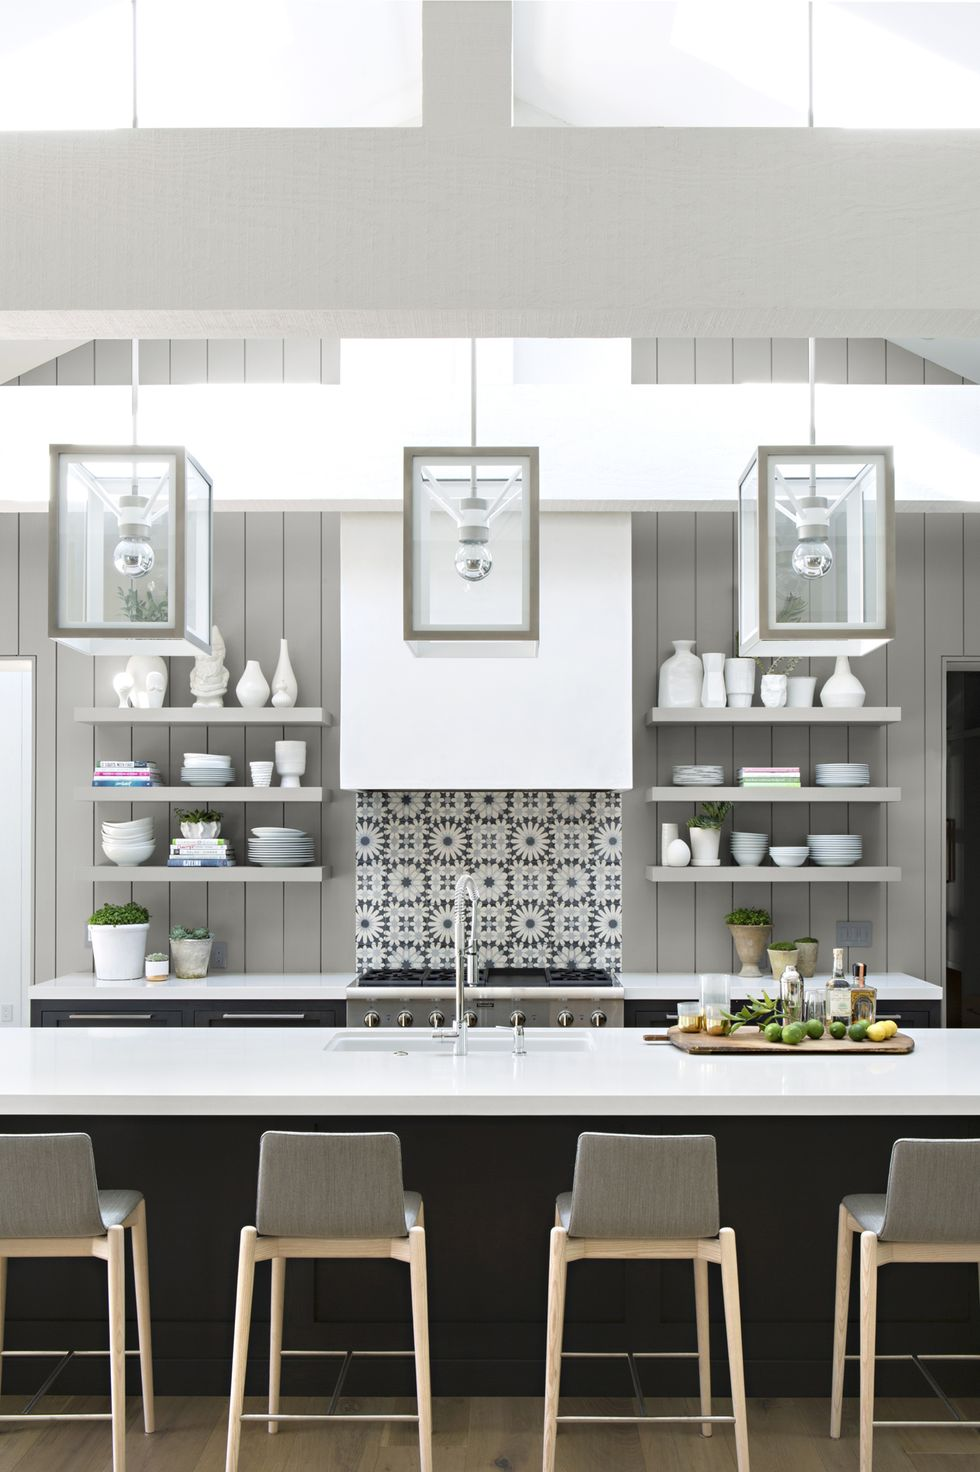 Blizzard Caesarstone countertop in gray kitchen with storage shelves and square lighting